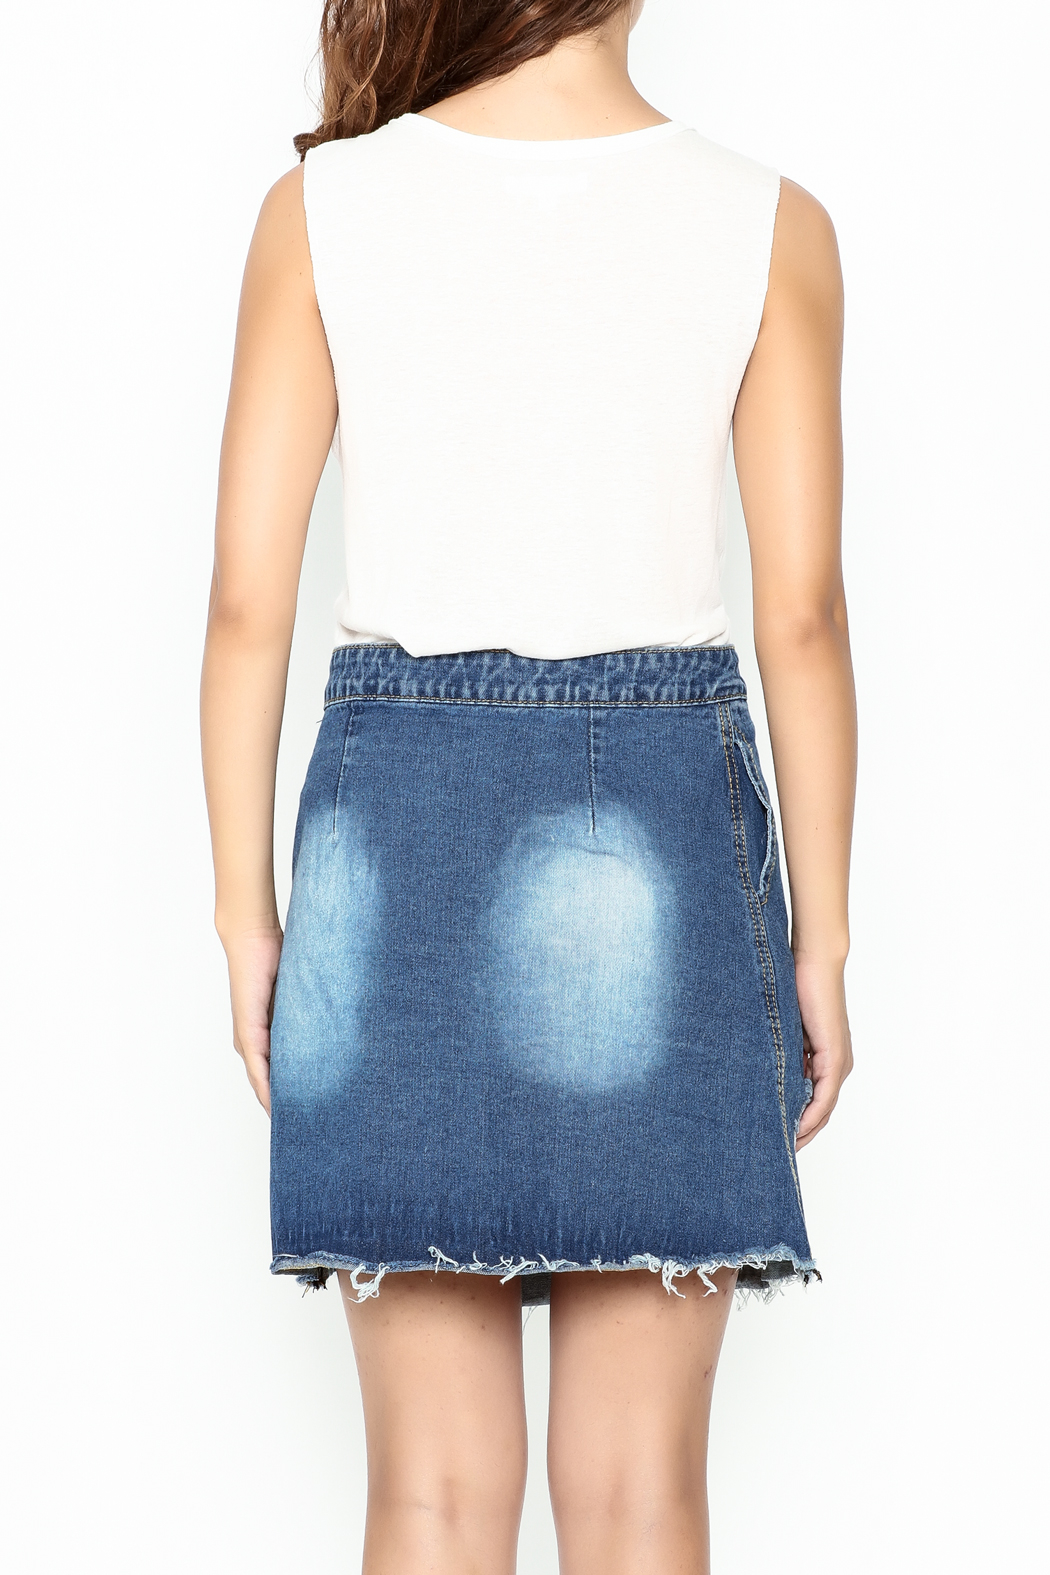 n/a Deconstructed Denim Skirt - Back Cropped Image